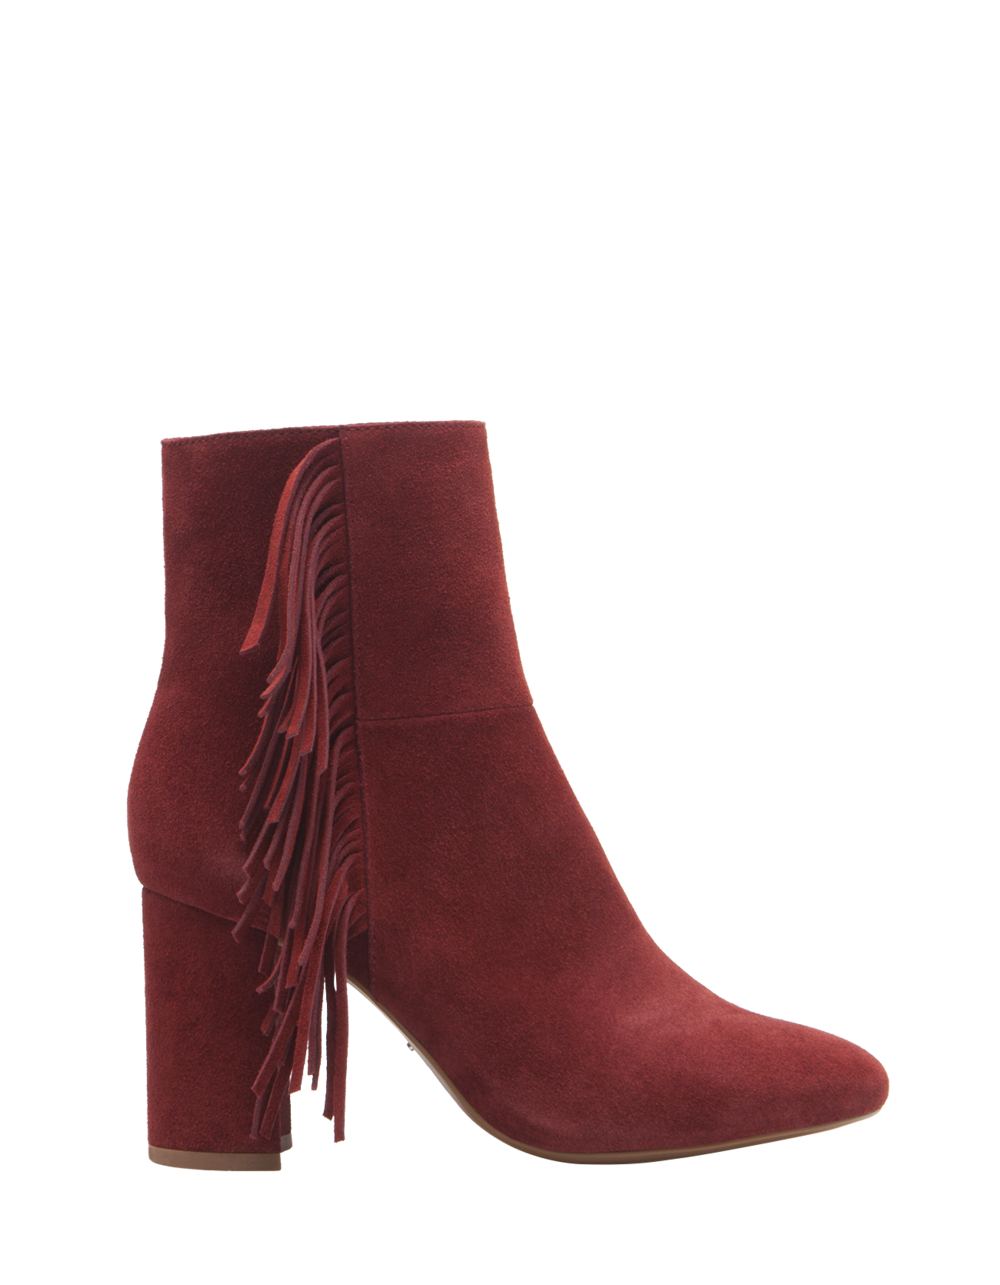 Stradivarius_fw15_shoes (7).png